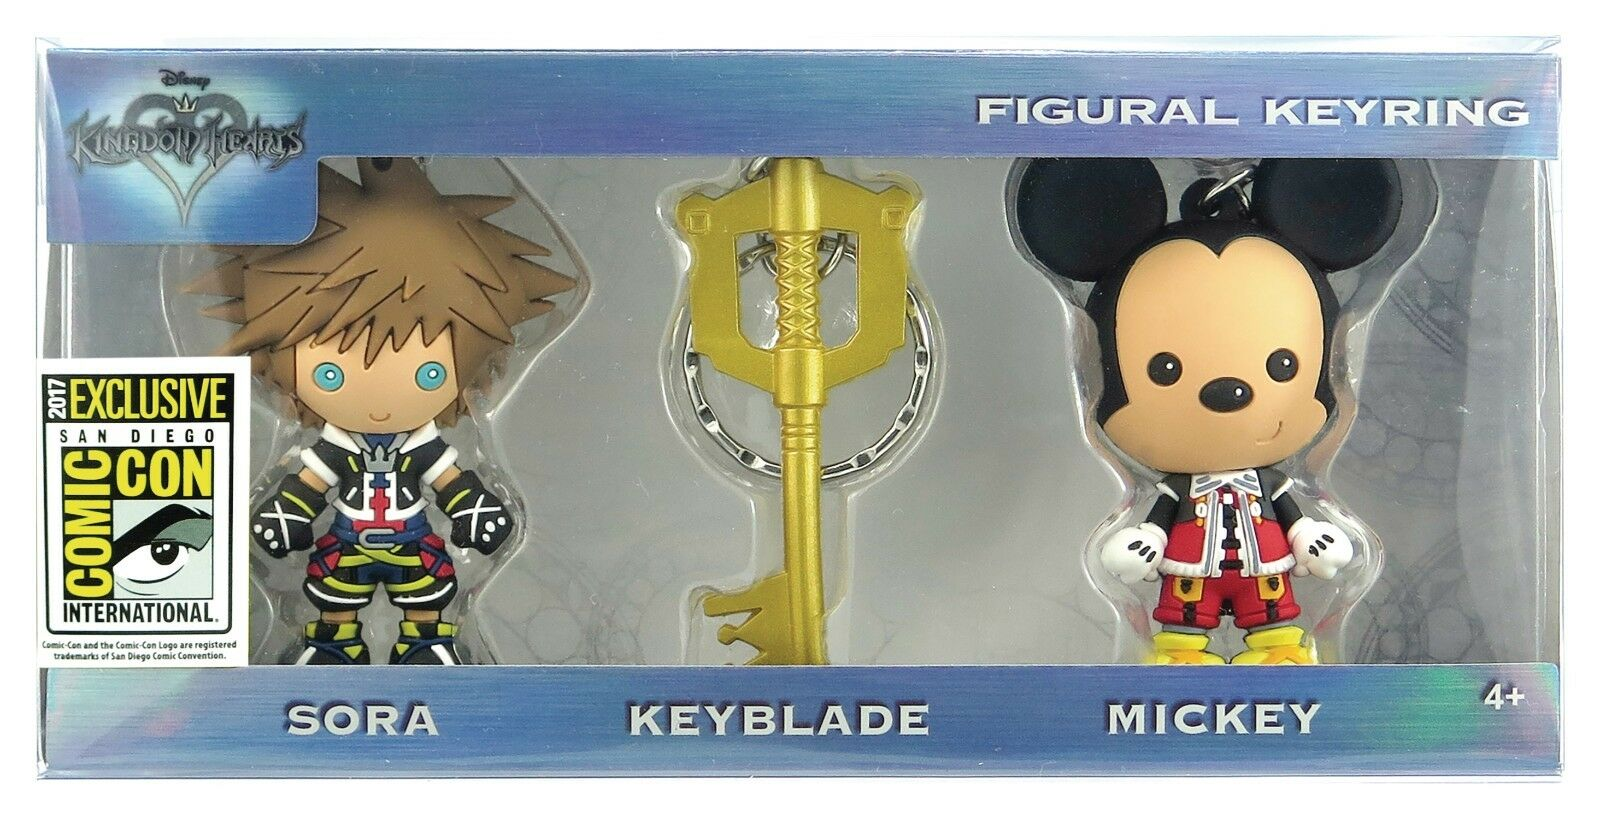 KINGDOM HEARTS 2 FIGURAL KEYRING SDCC 2017 EXCLUSIVE SAN DIEGO COMIC CON SORA